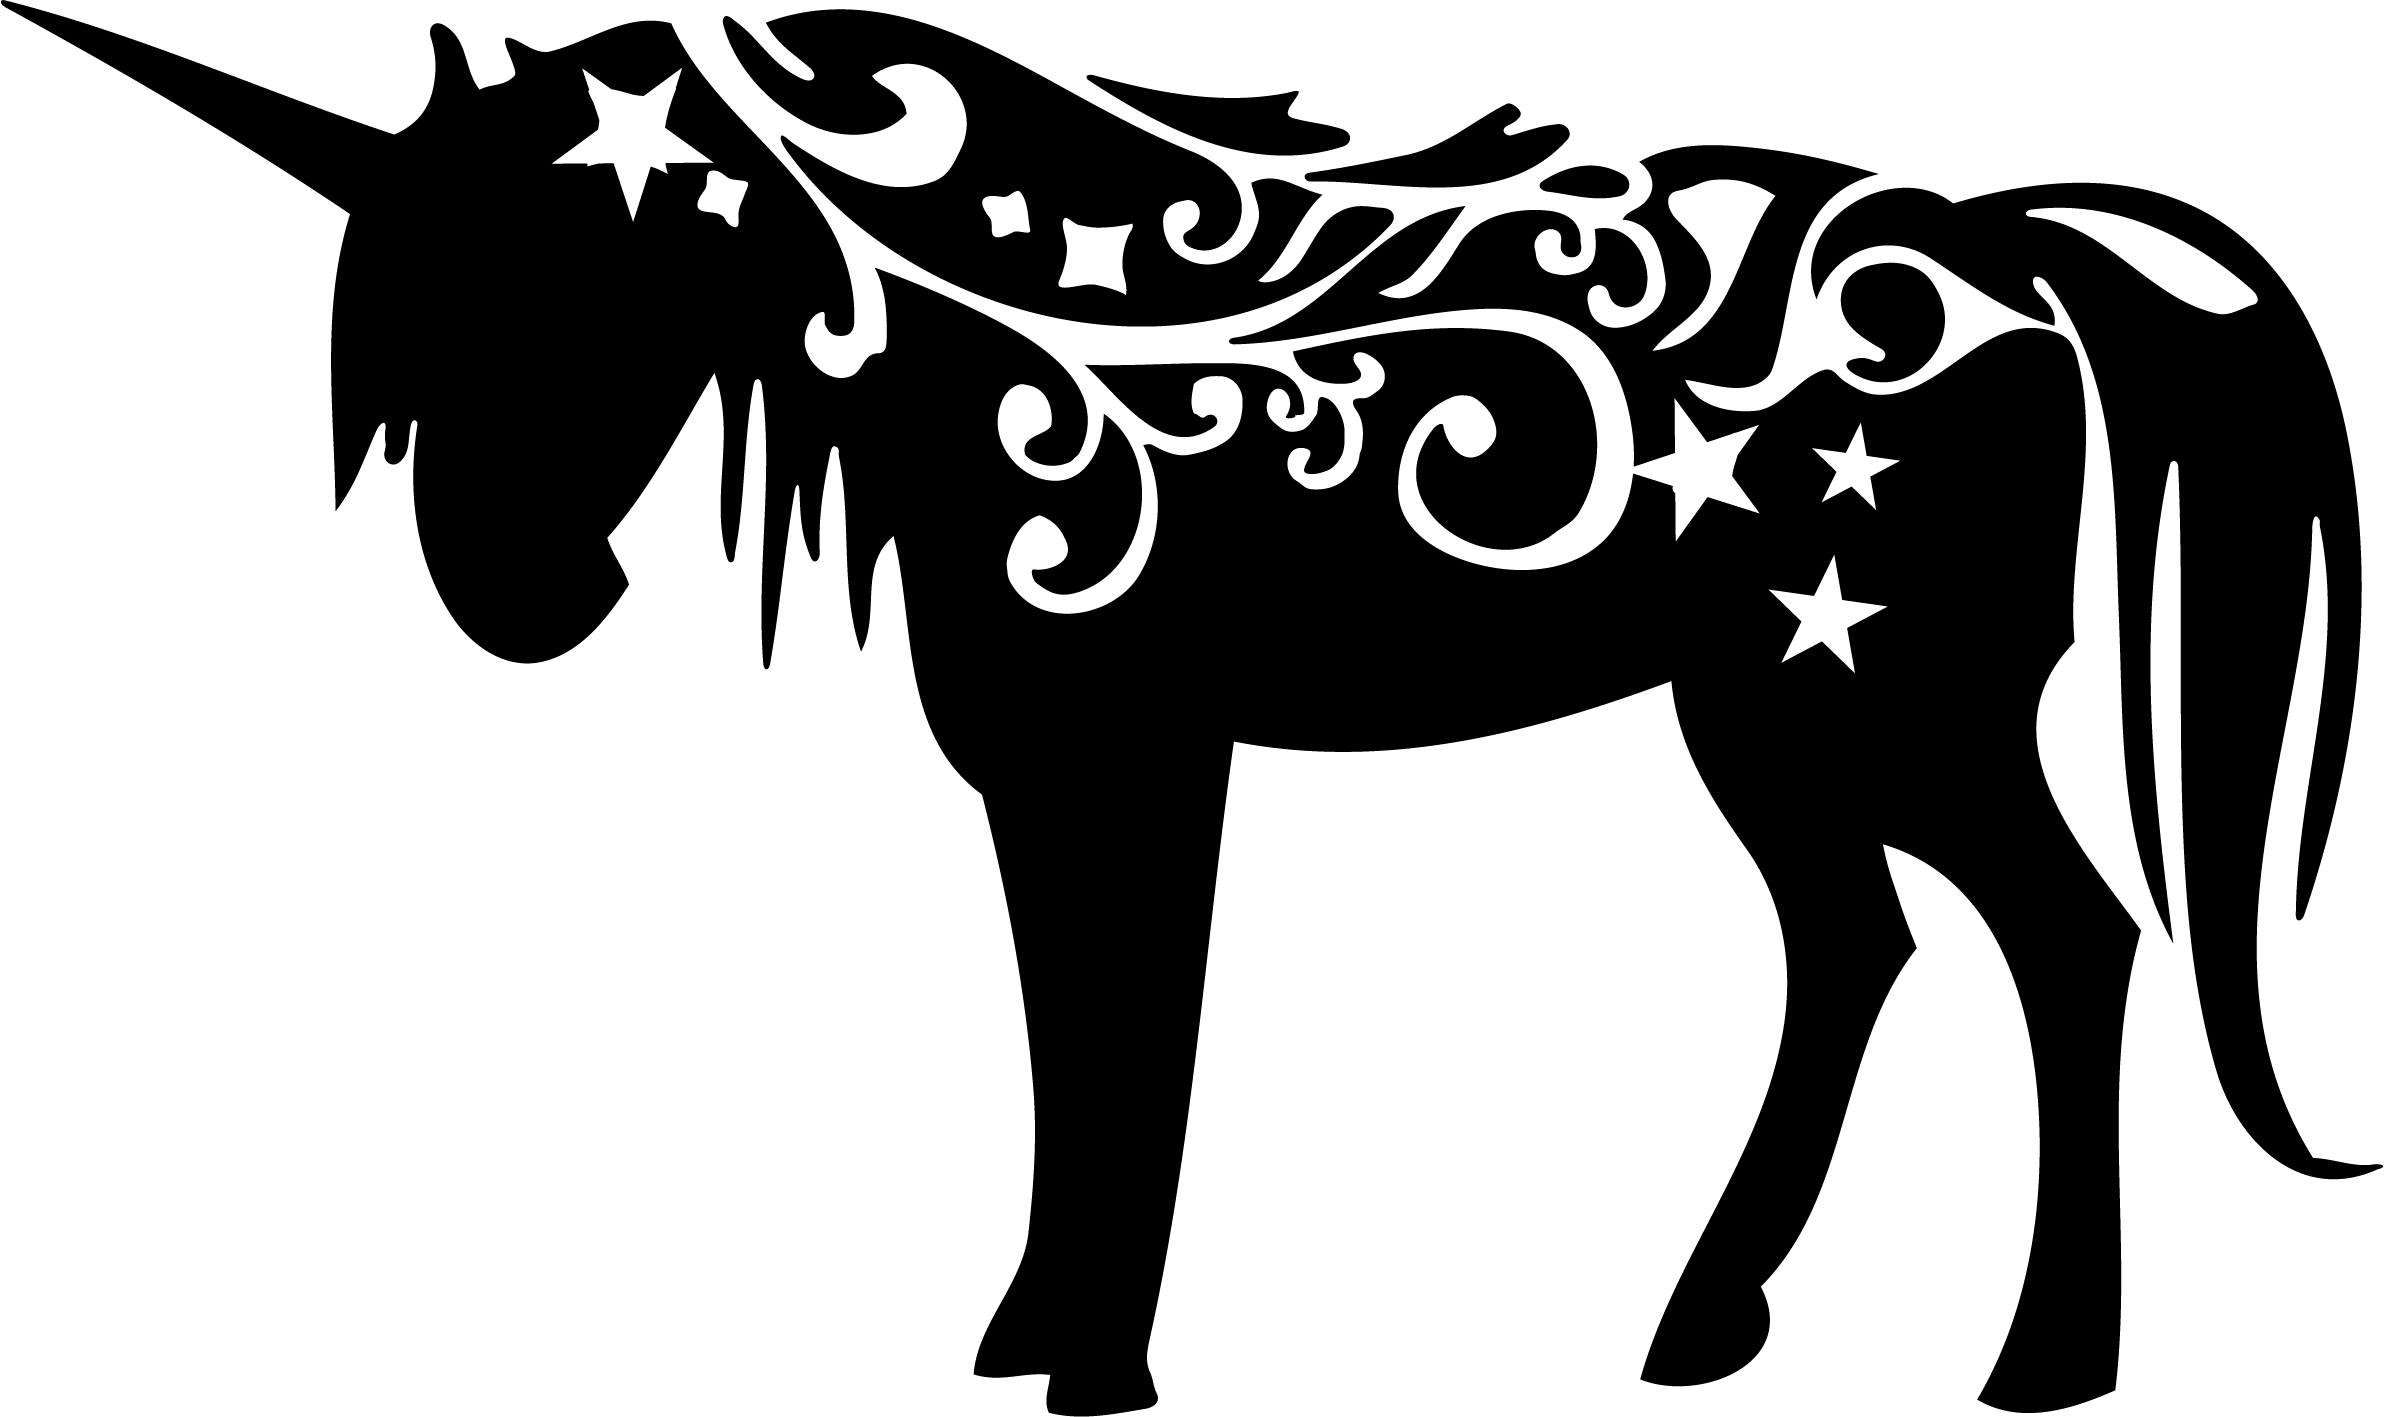 Clipart unicorn design. Silhouette all things fantasy